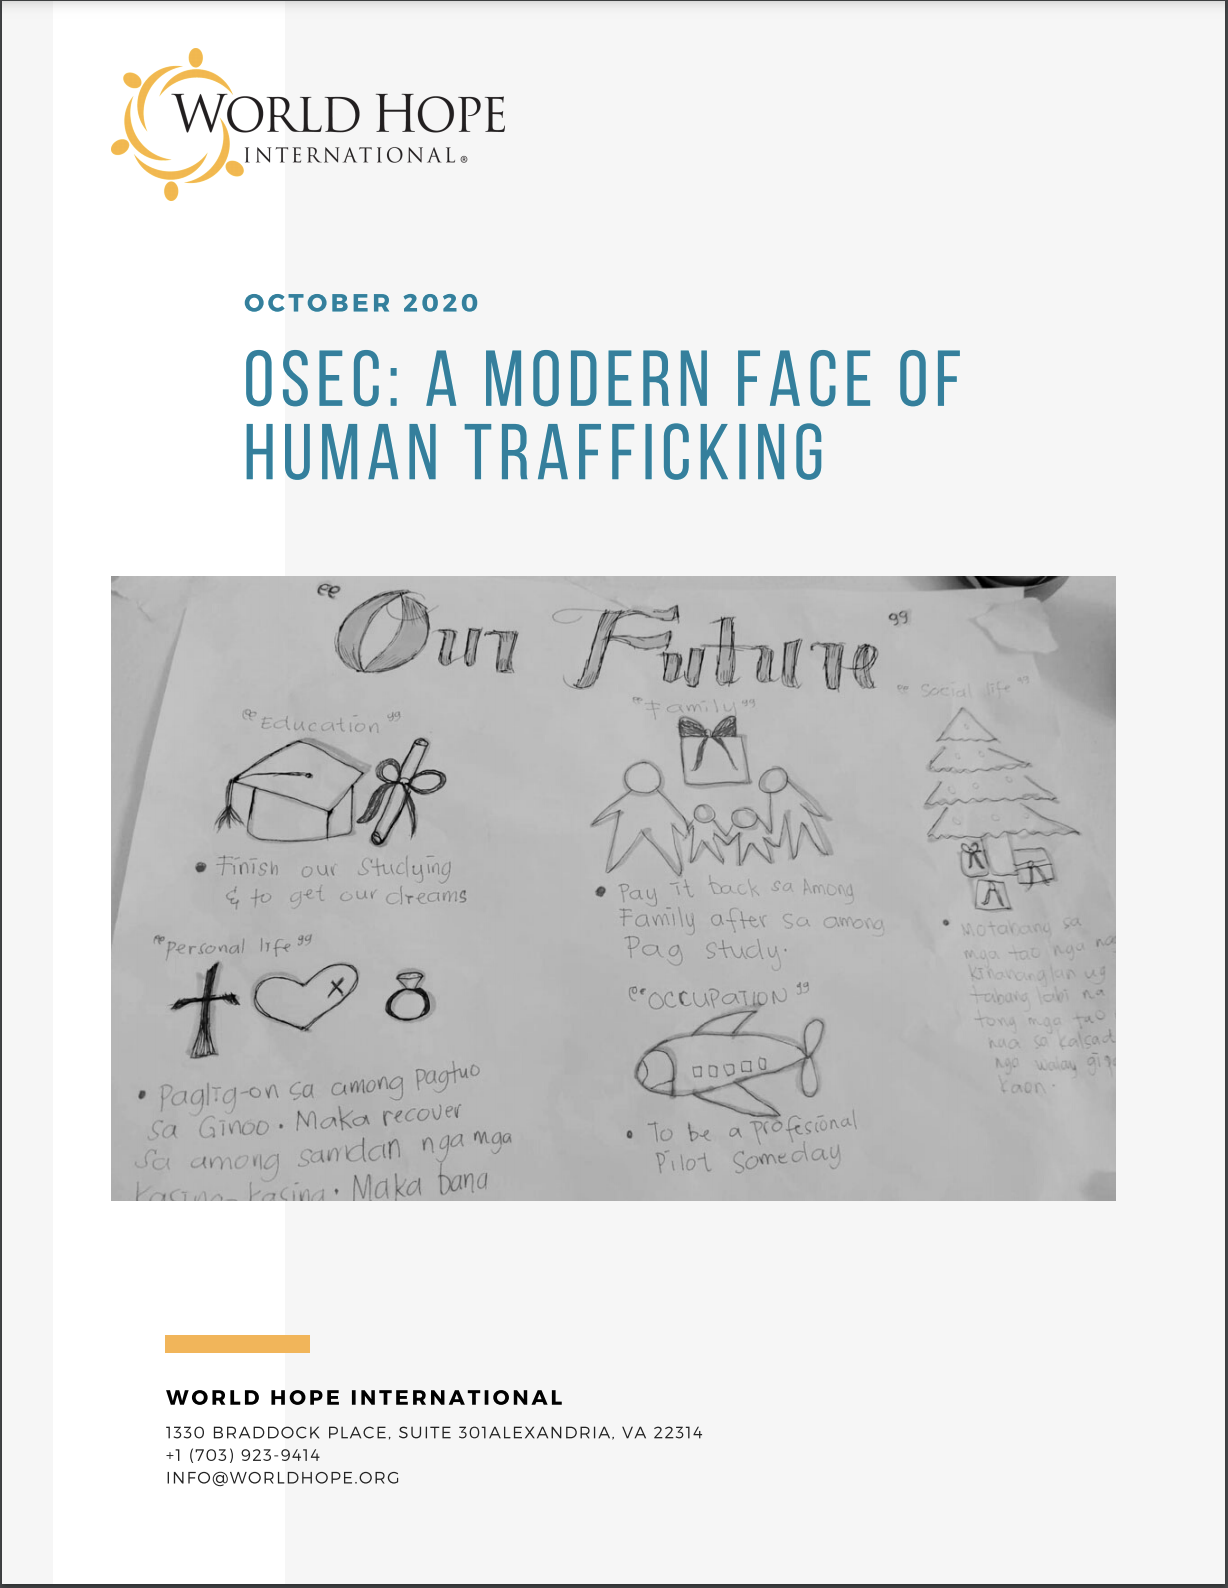 OSEC: A MODERN FACE OF HUMAN TRAFFICKING